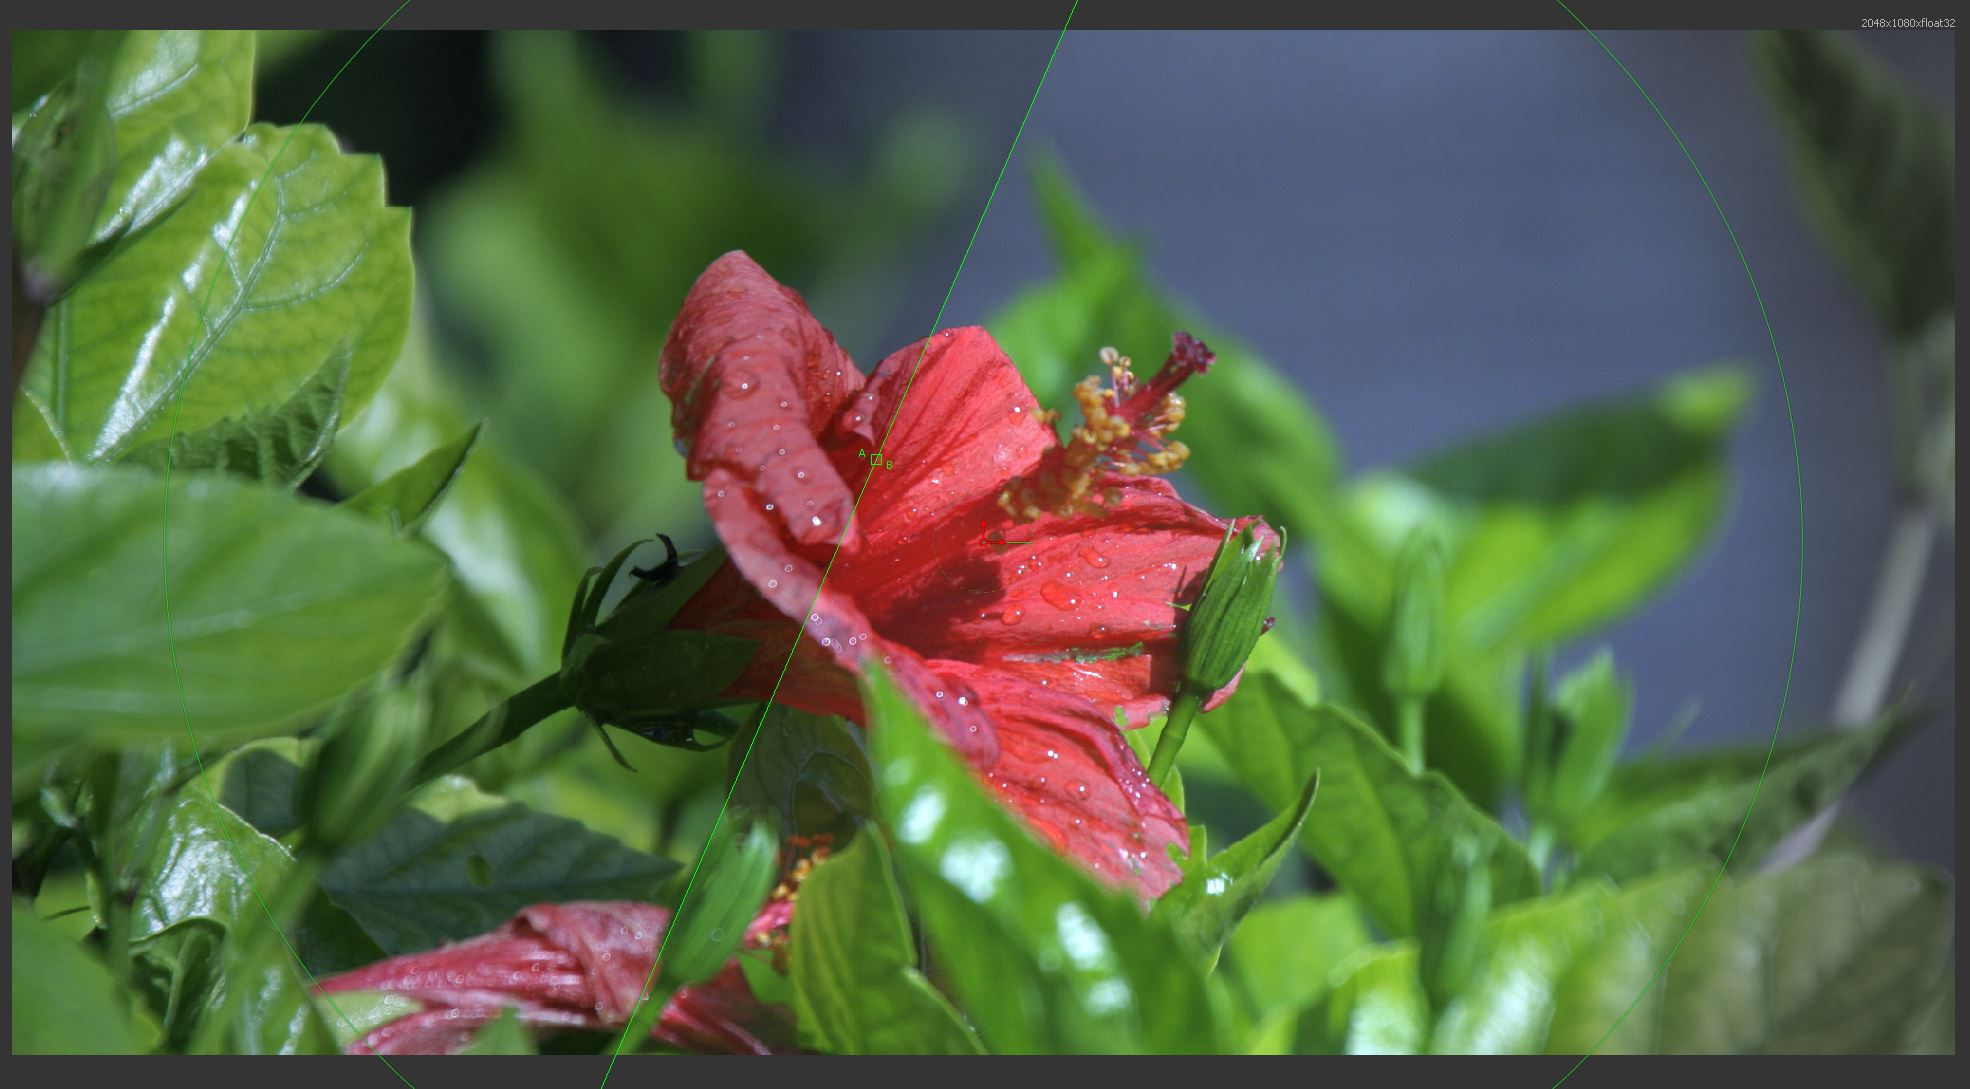 Pixel-perfect float32 GPU color correction demonstrated on a picture of a flower